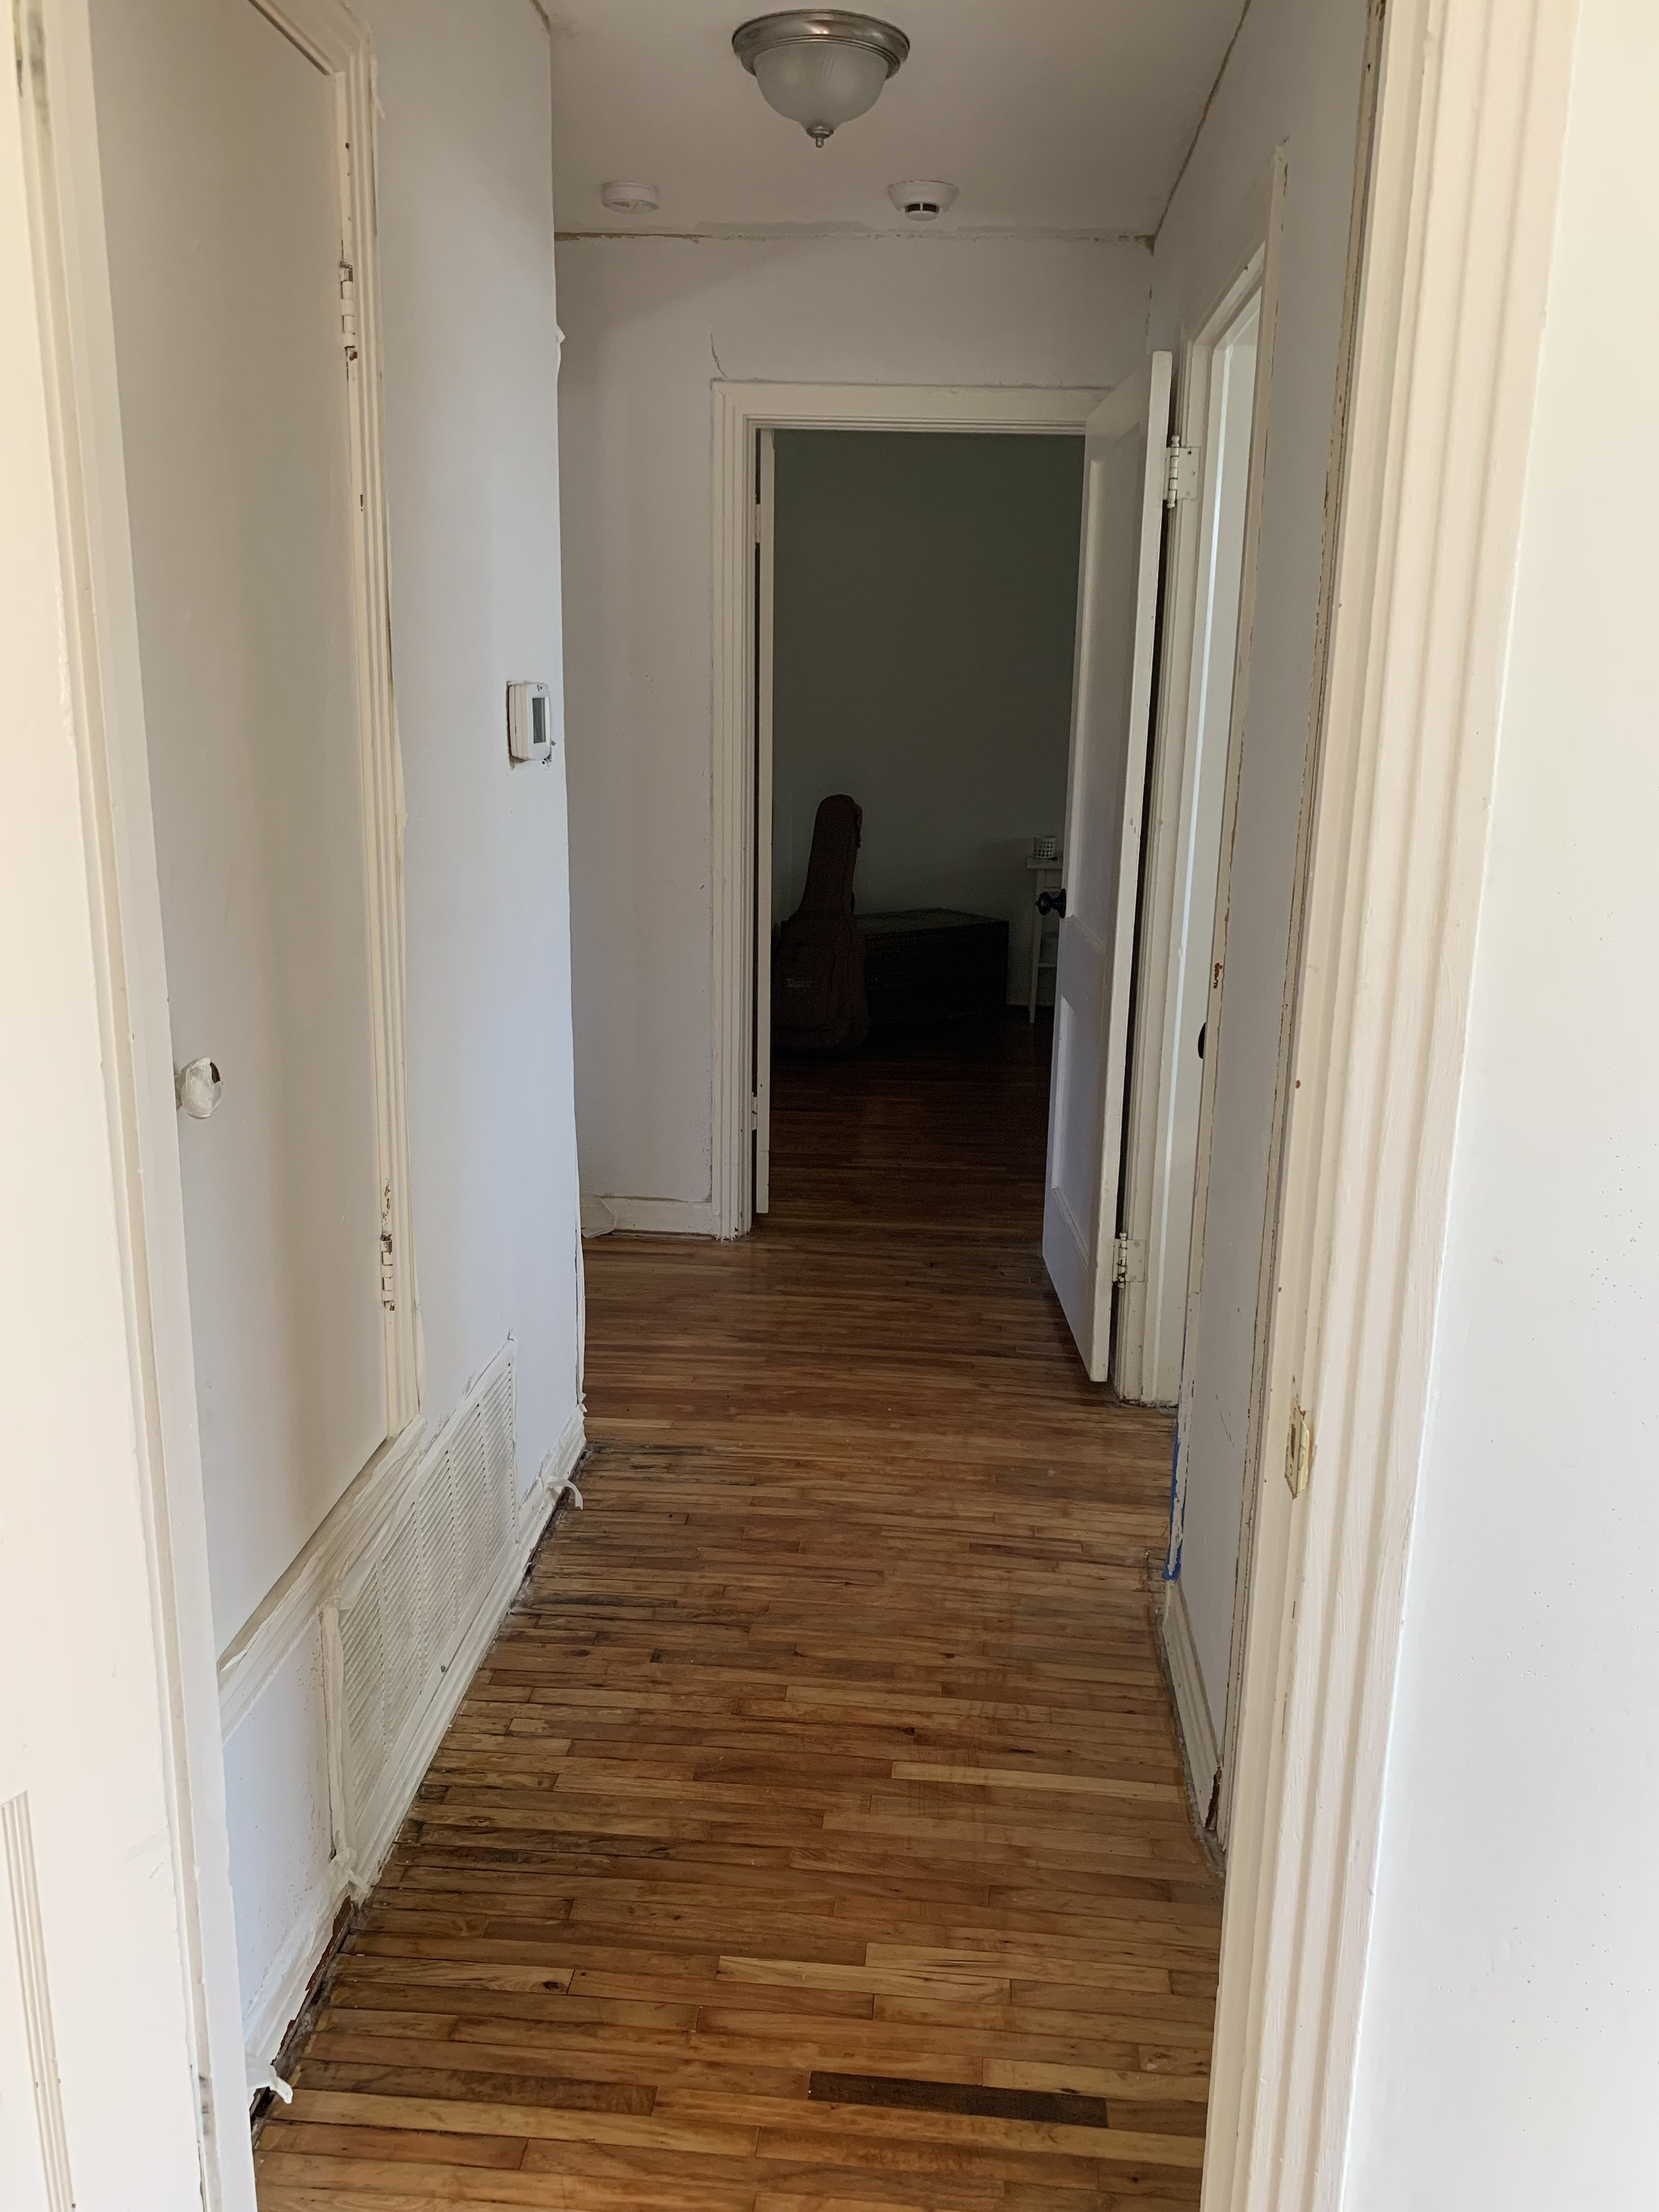 Standing in the office and looking north to the bedroom now. The closet on the left is serving as a linen closet for now. Even just adding the new mud (not painted at all) has brightened the space so much.